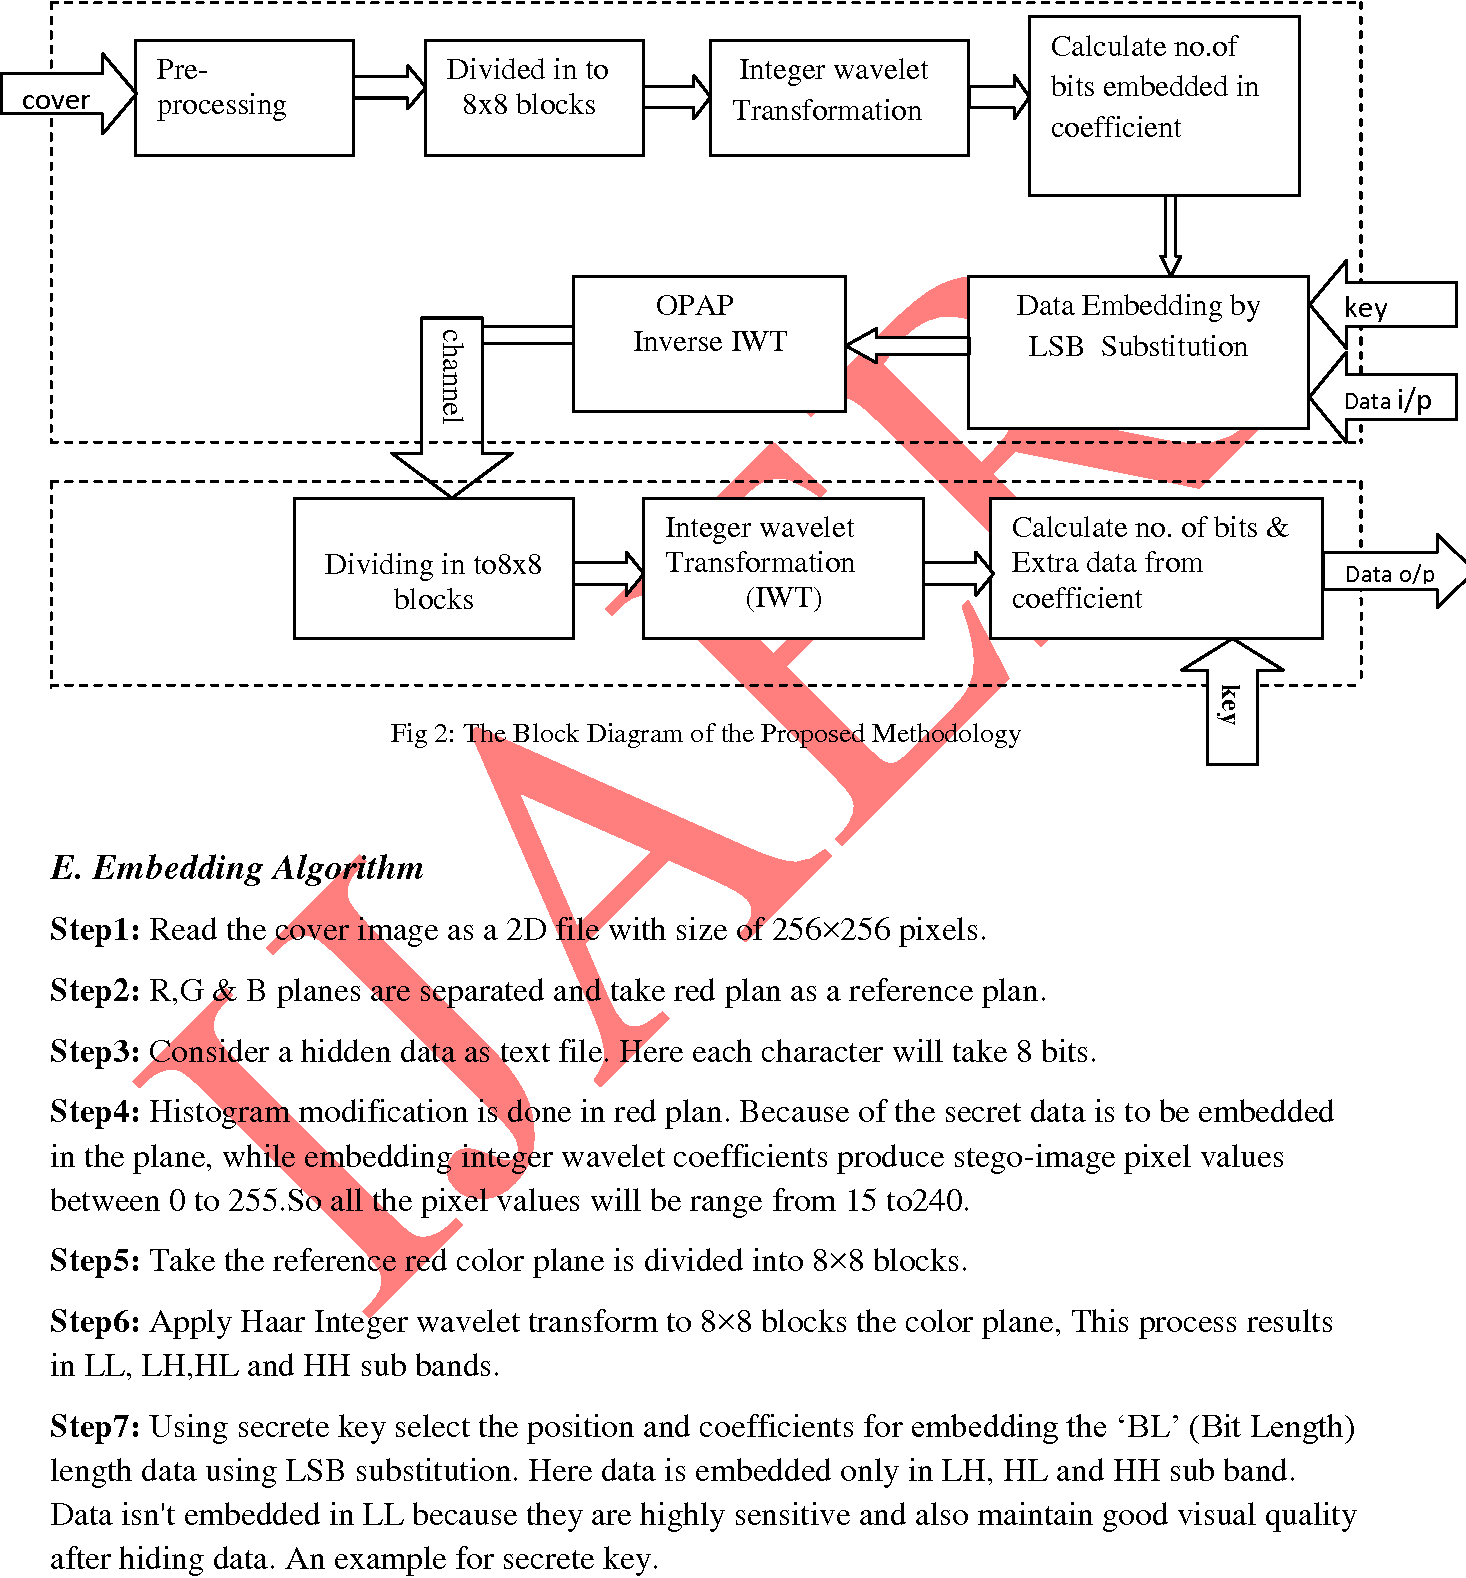 Fig 2: The Block Diagram of the Proposed Methodology